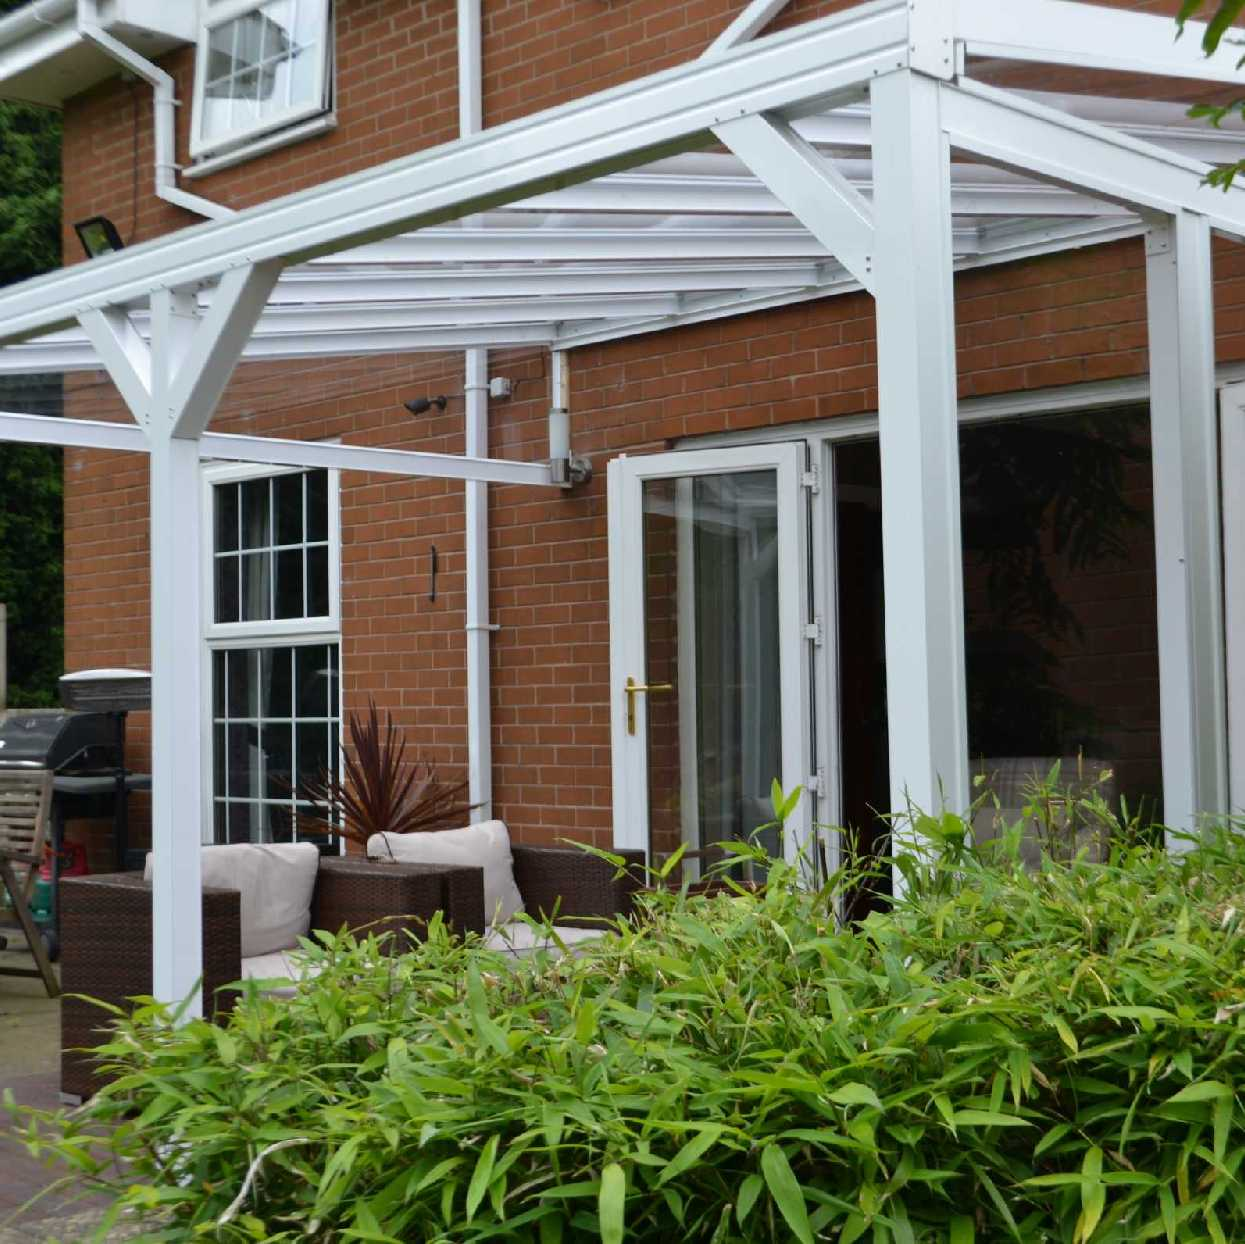 Omega Smart Lean-To Canopy with 6mm Glass Clear Plate Polycarbonate Glazing - 2.8m (W) x 1.5m (P), (2) Supporting Posts from Omega Build